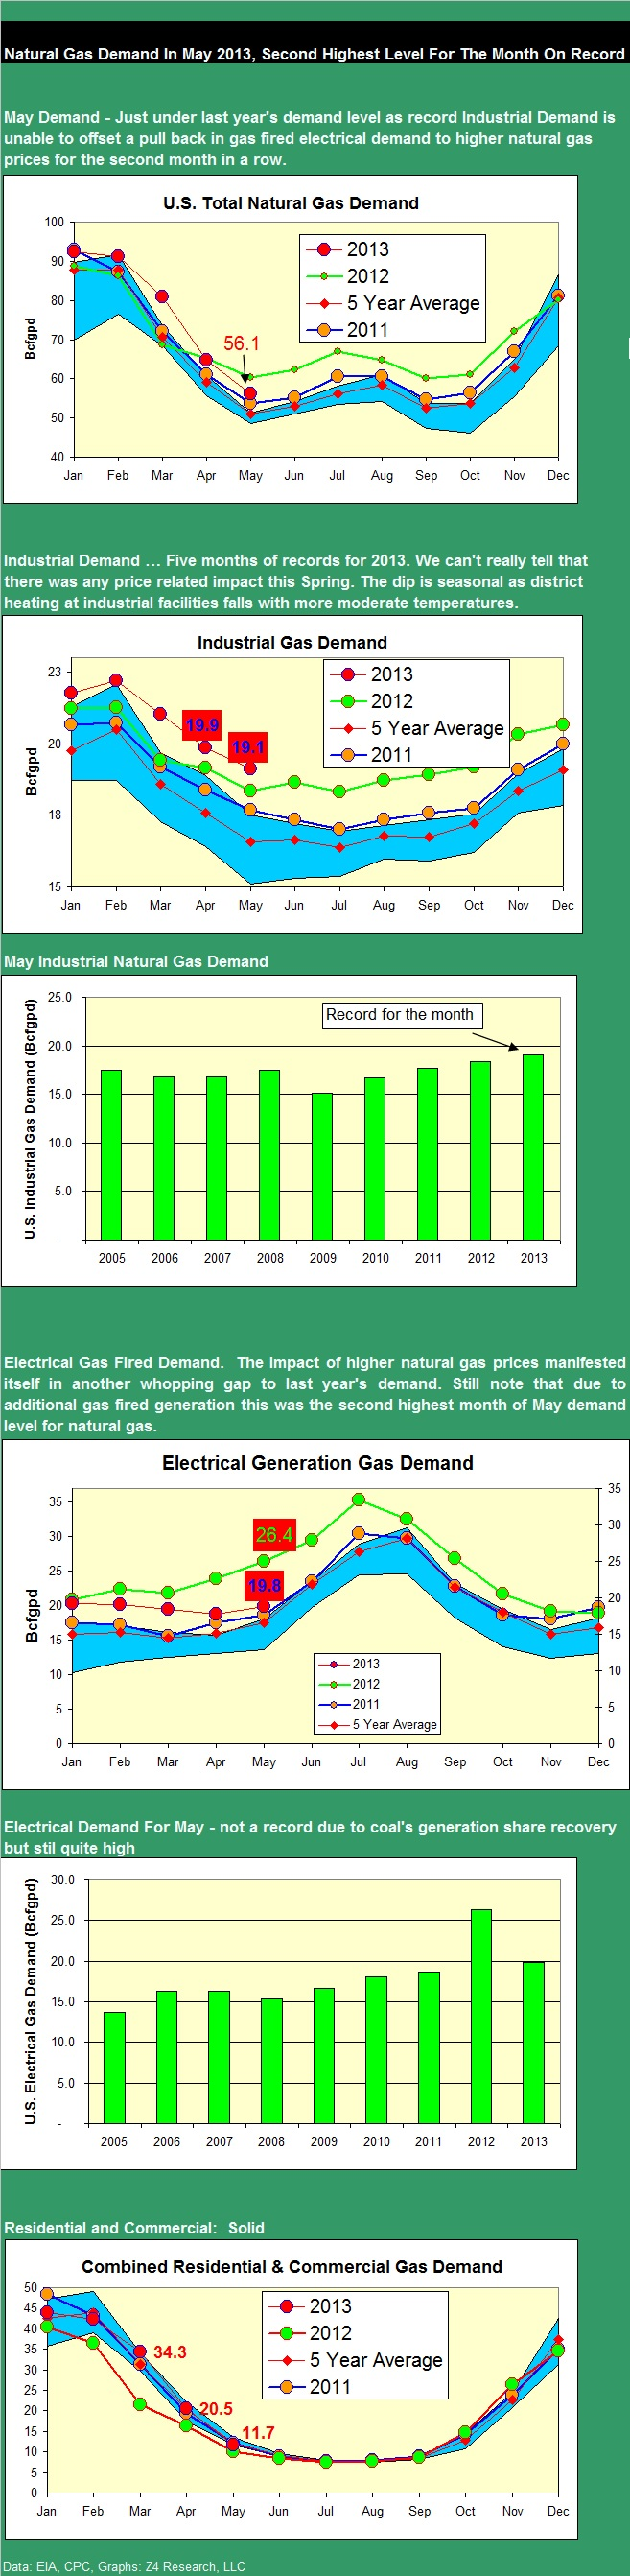 NG demand May 2013